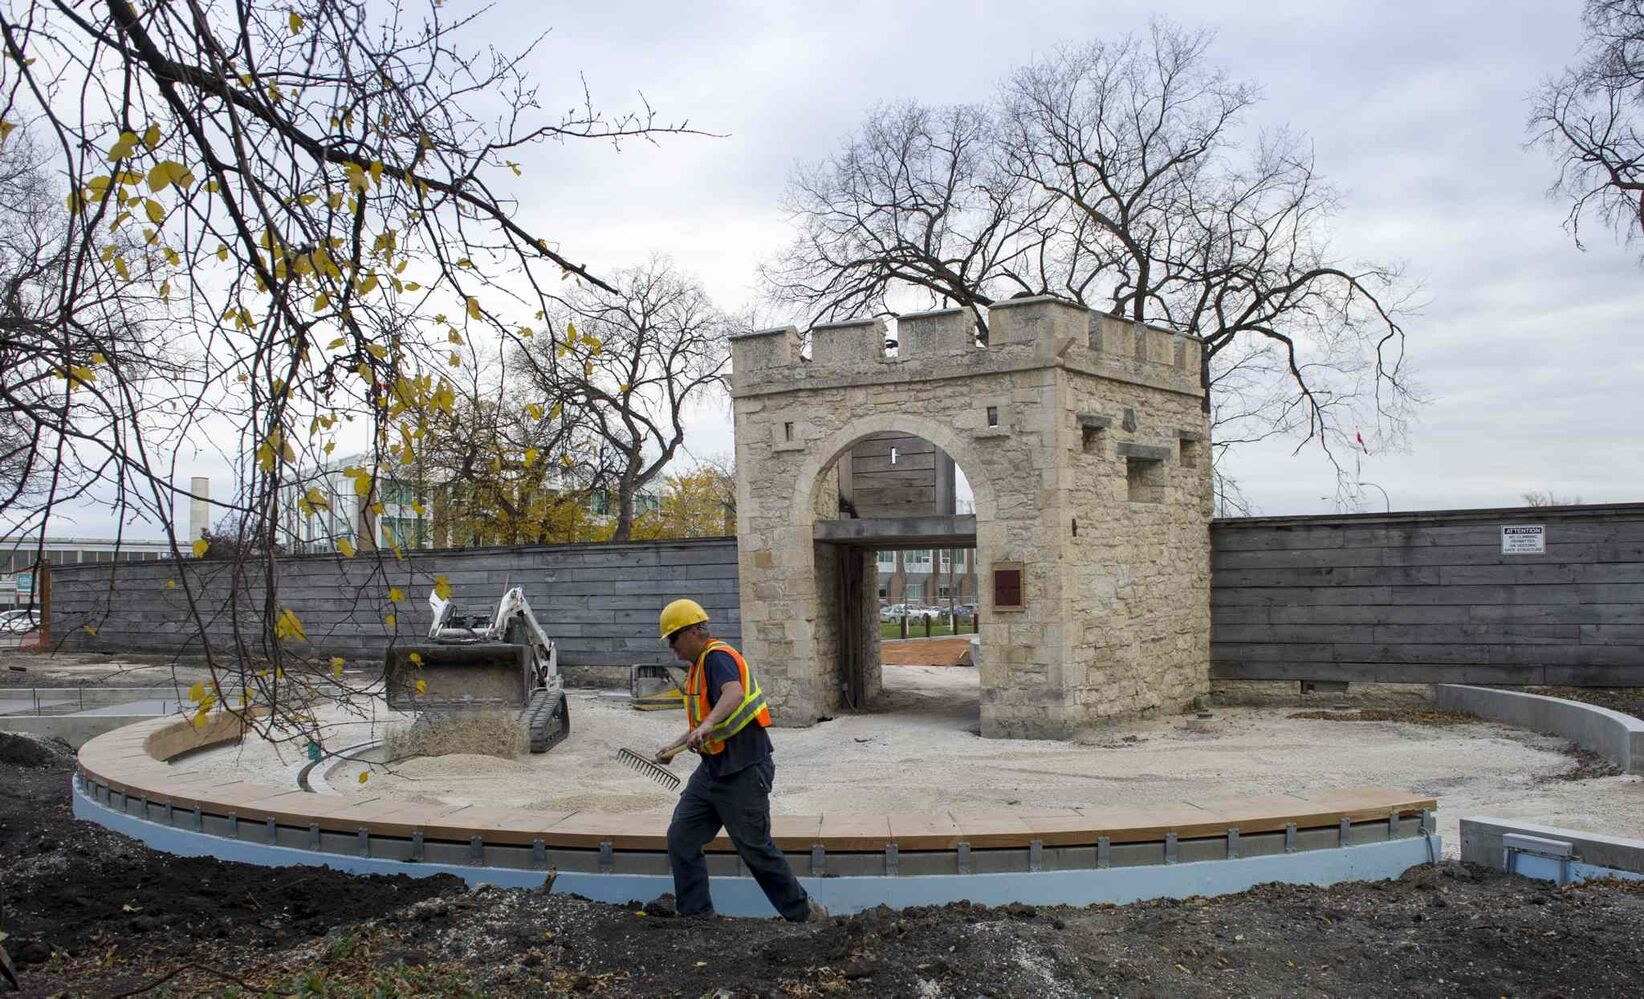 Construction work continues on the site of Upper Fort Garry prior to Saturday's opening ceremony. (DAVID LIPNOWSKI / WINNIPEG FREE PRESS)